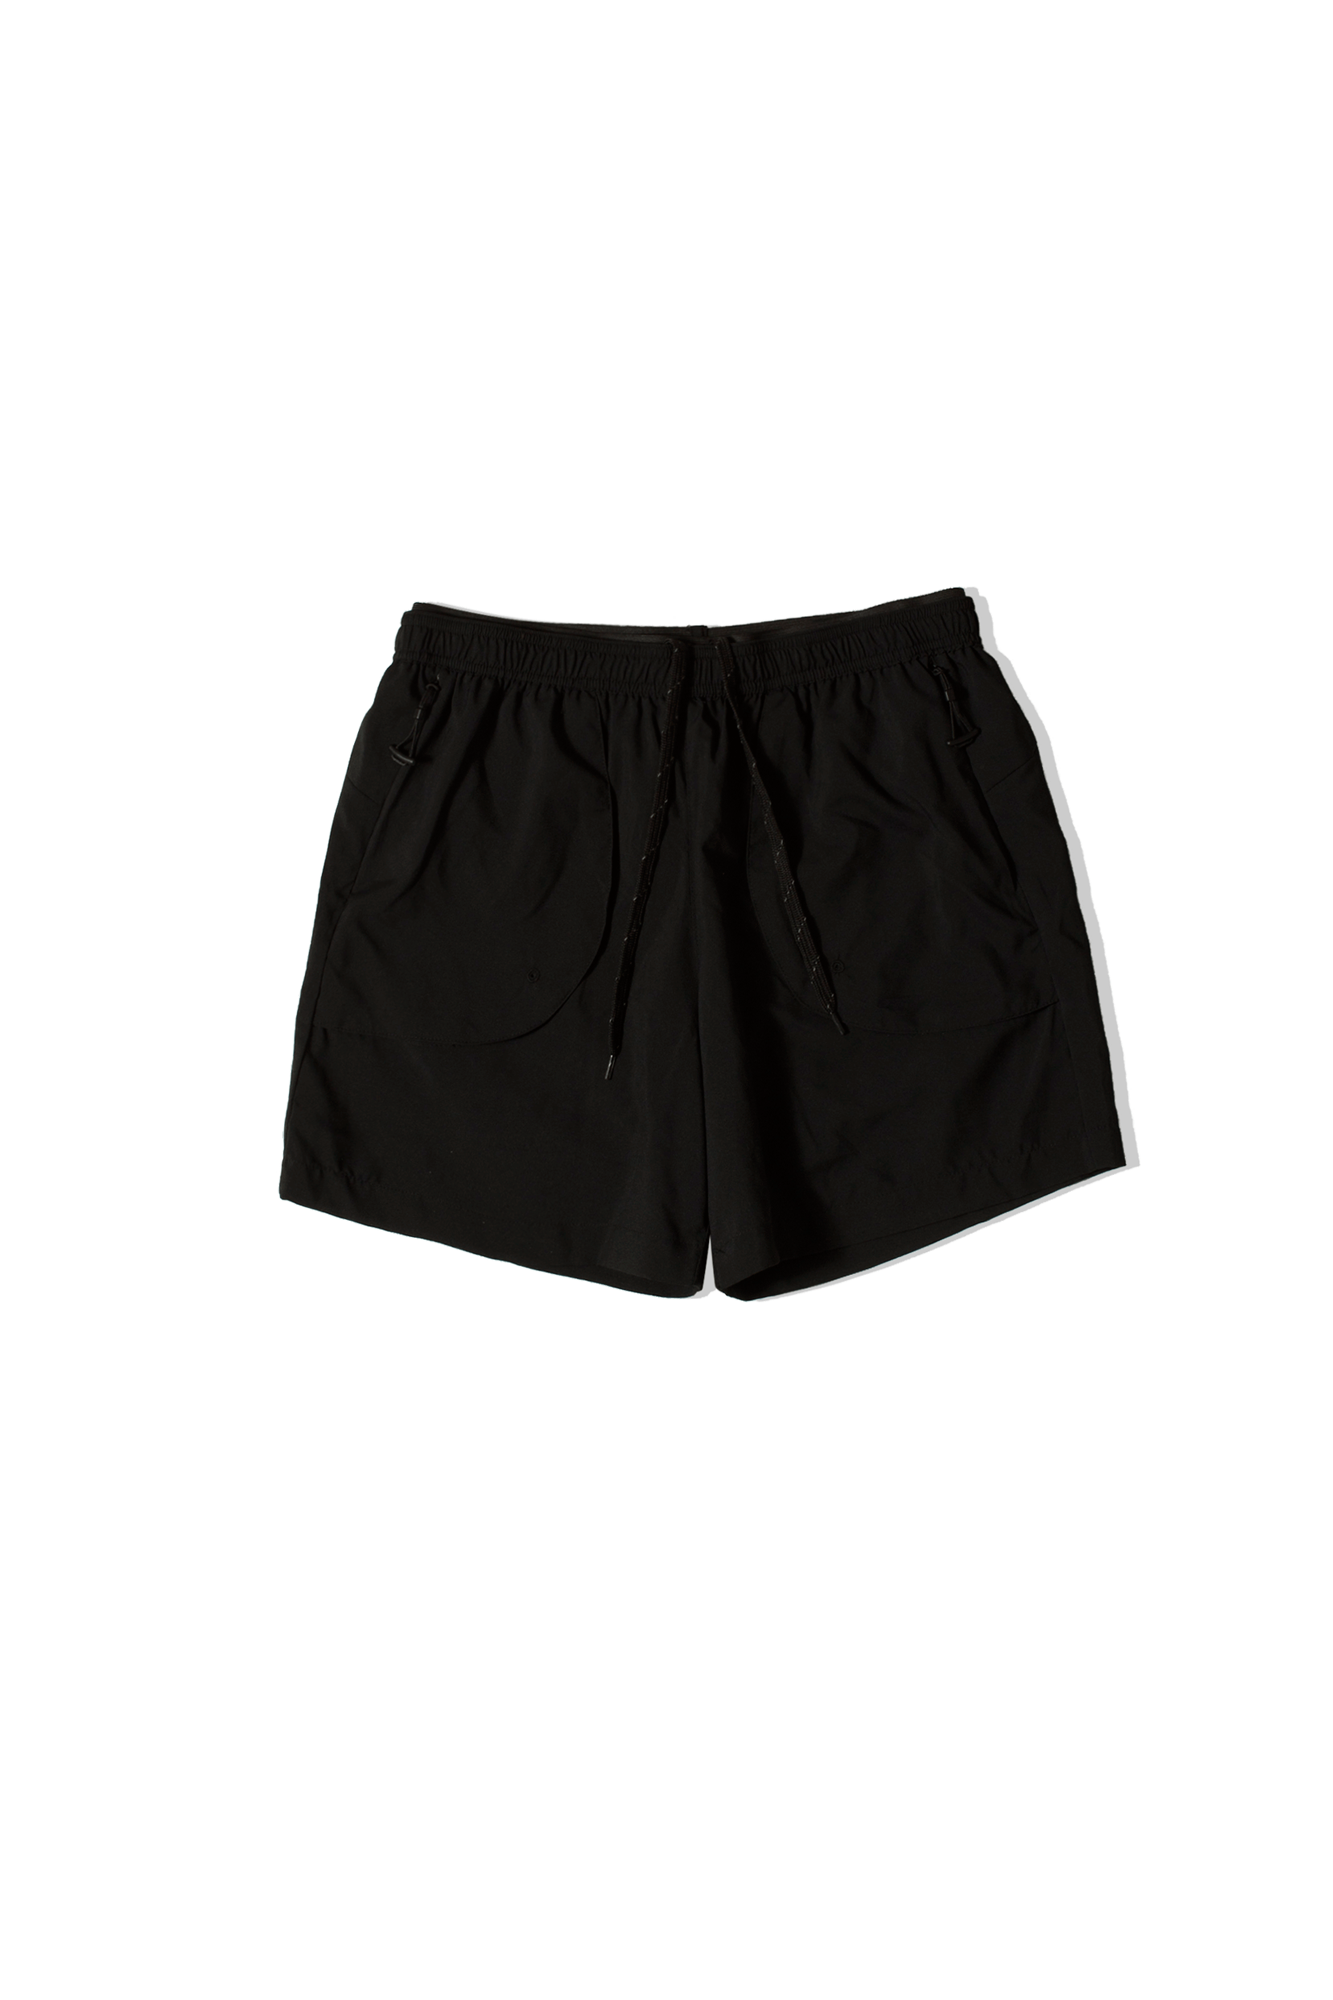 Harley Shorts Black